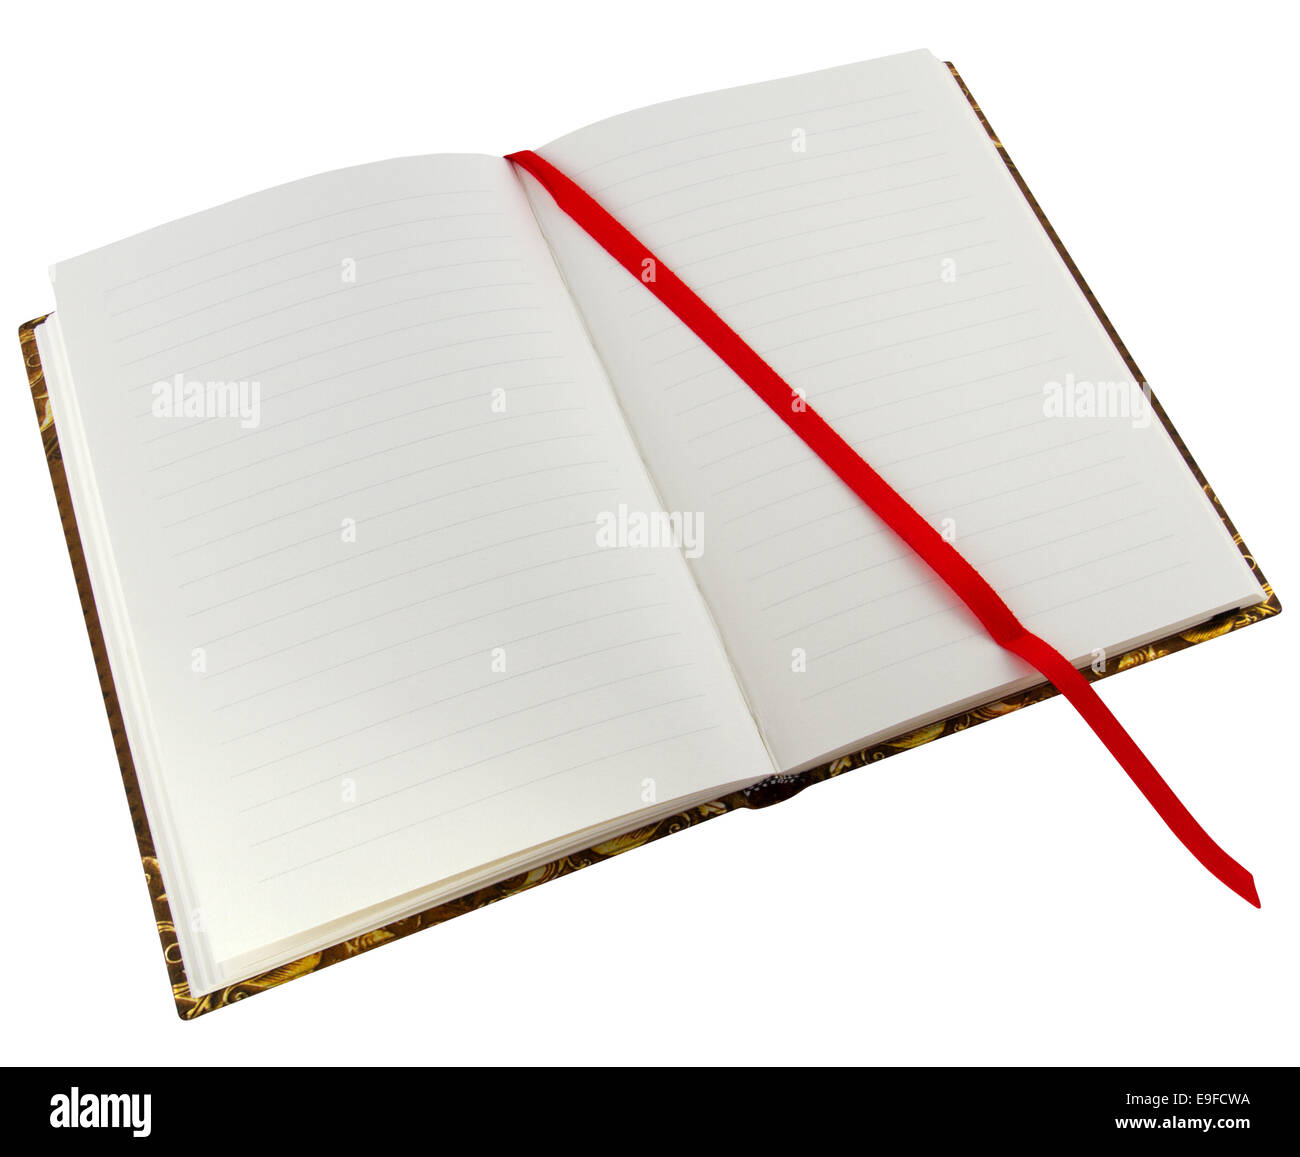 Book with red binder textspace available - Stock Image